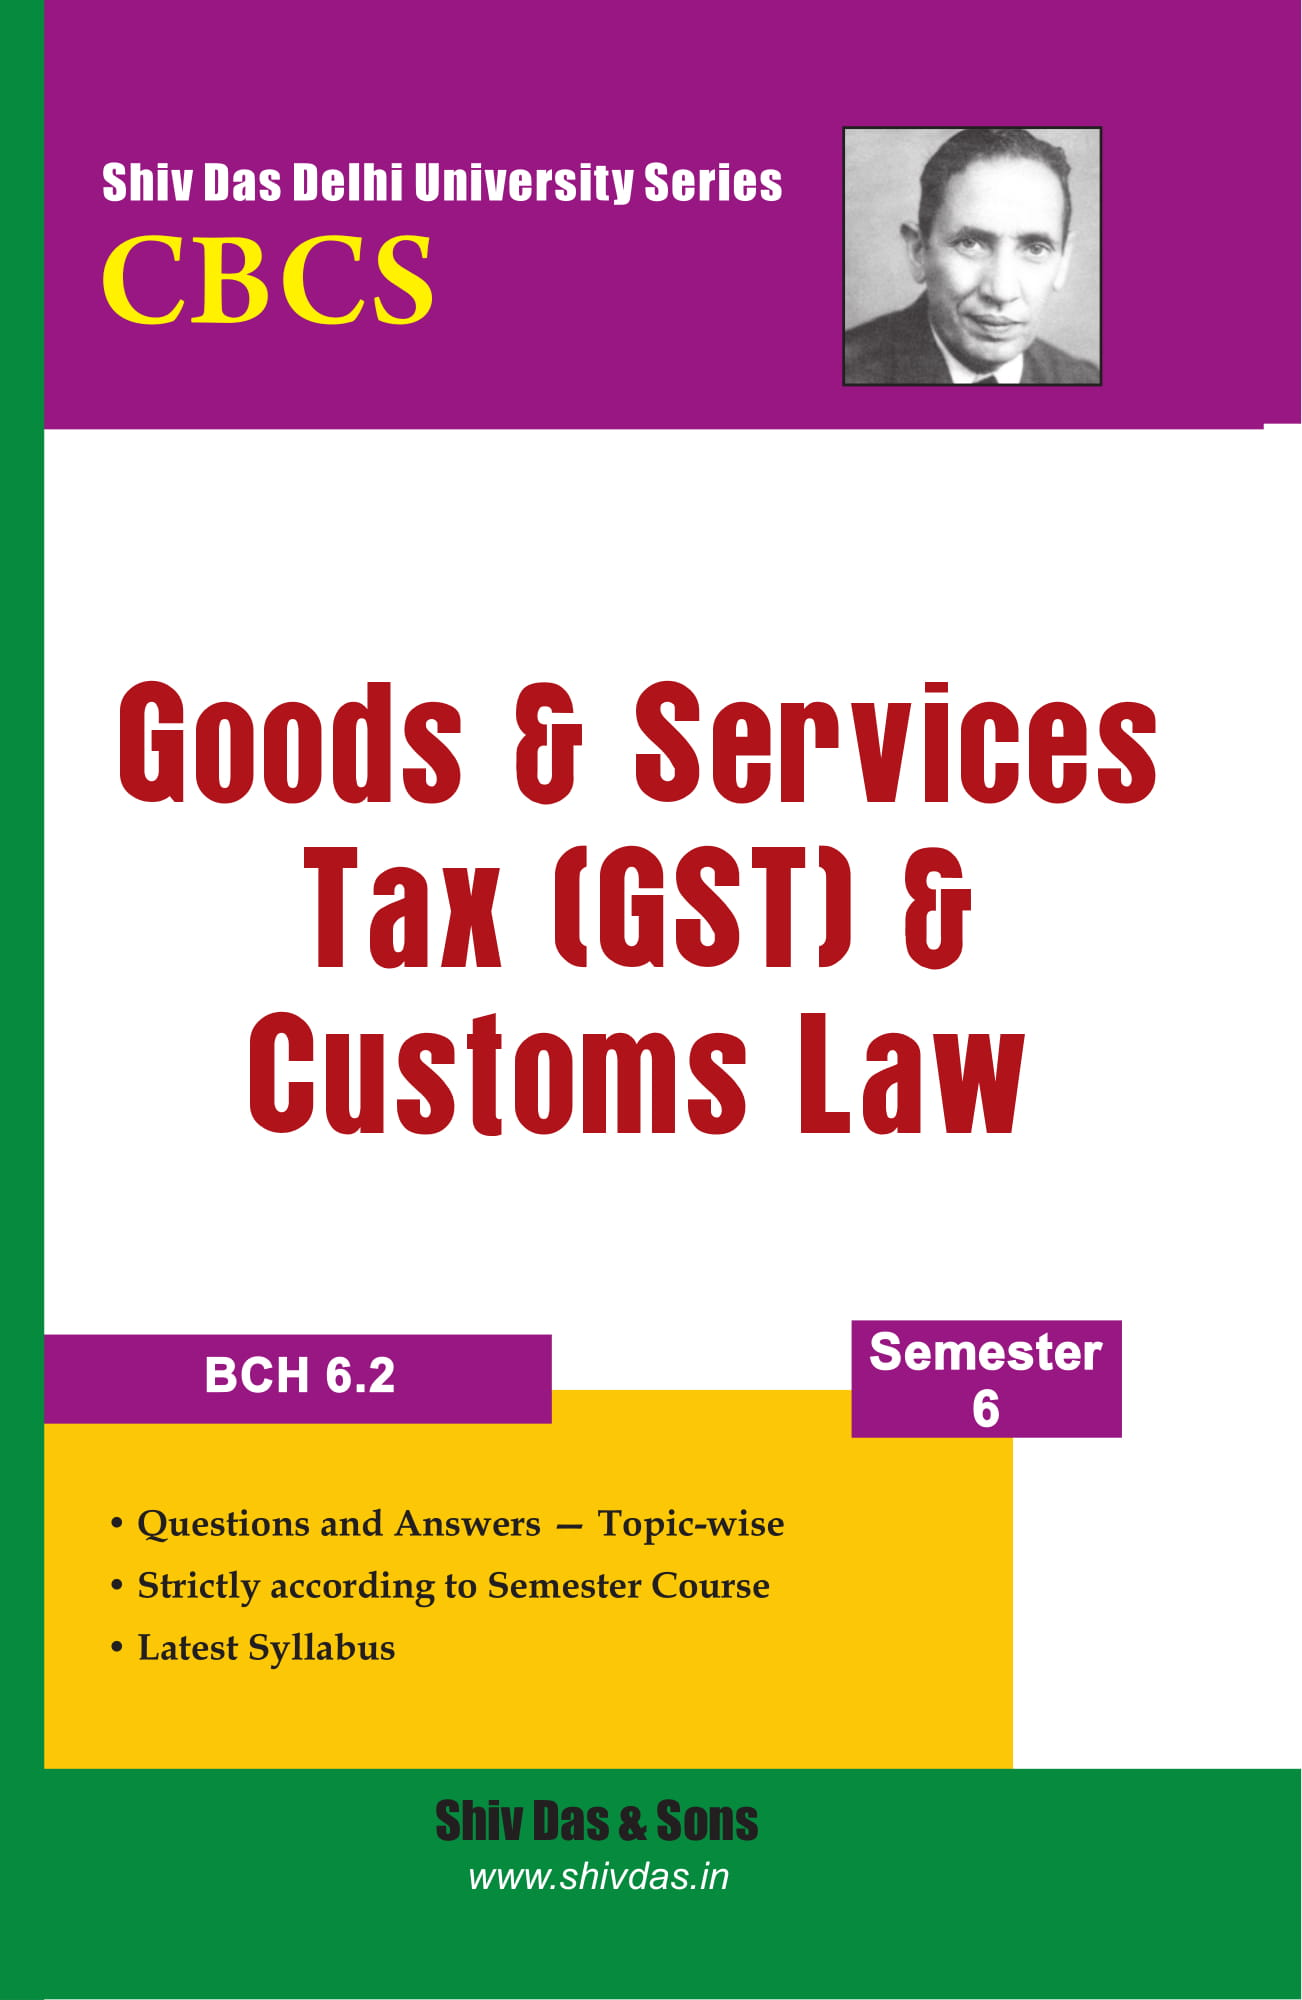 Good & Services Tax (GST) & Customs Law for B.Com Hons  Semester 6